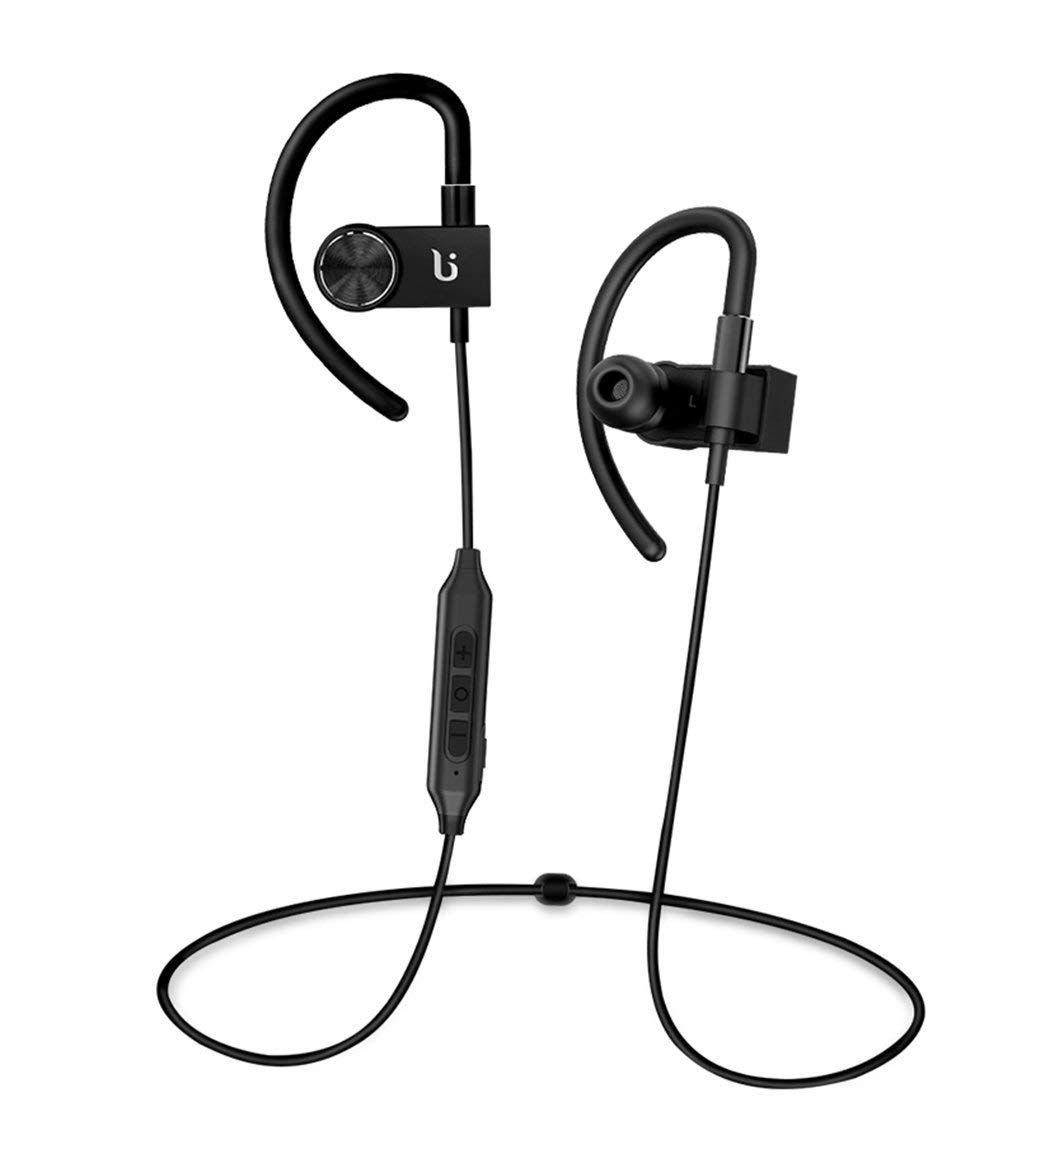 Rock-Crystal788 Bluetooth Headphones Wireless Earphone Sport Headphones Headset Earphones with Mic V4.0 In-Ear Bluetooth Earbuds, Built-in Mic, Stereo Sound, Noise Cancelling (Black)